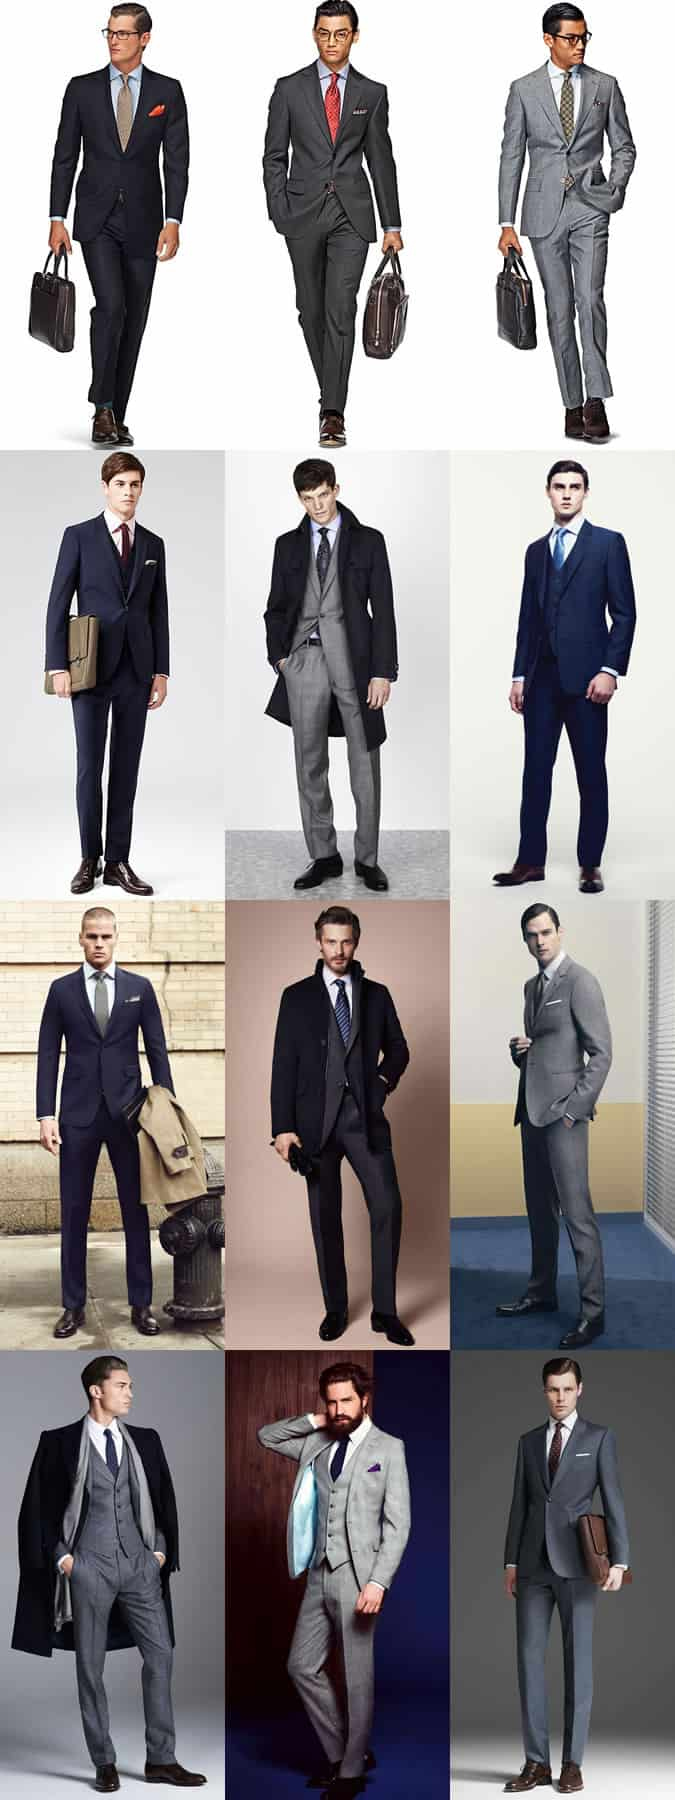 Men's Boardroom/Corporate/City Slicker Suits